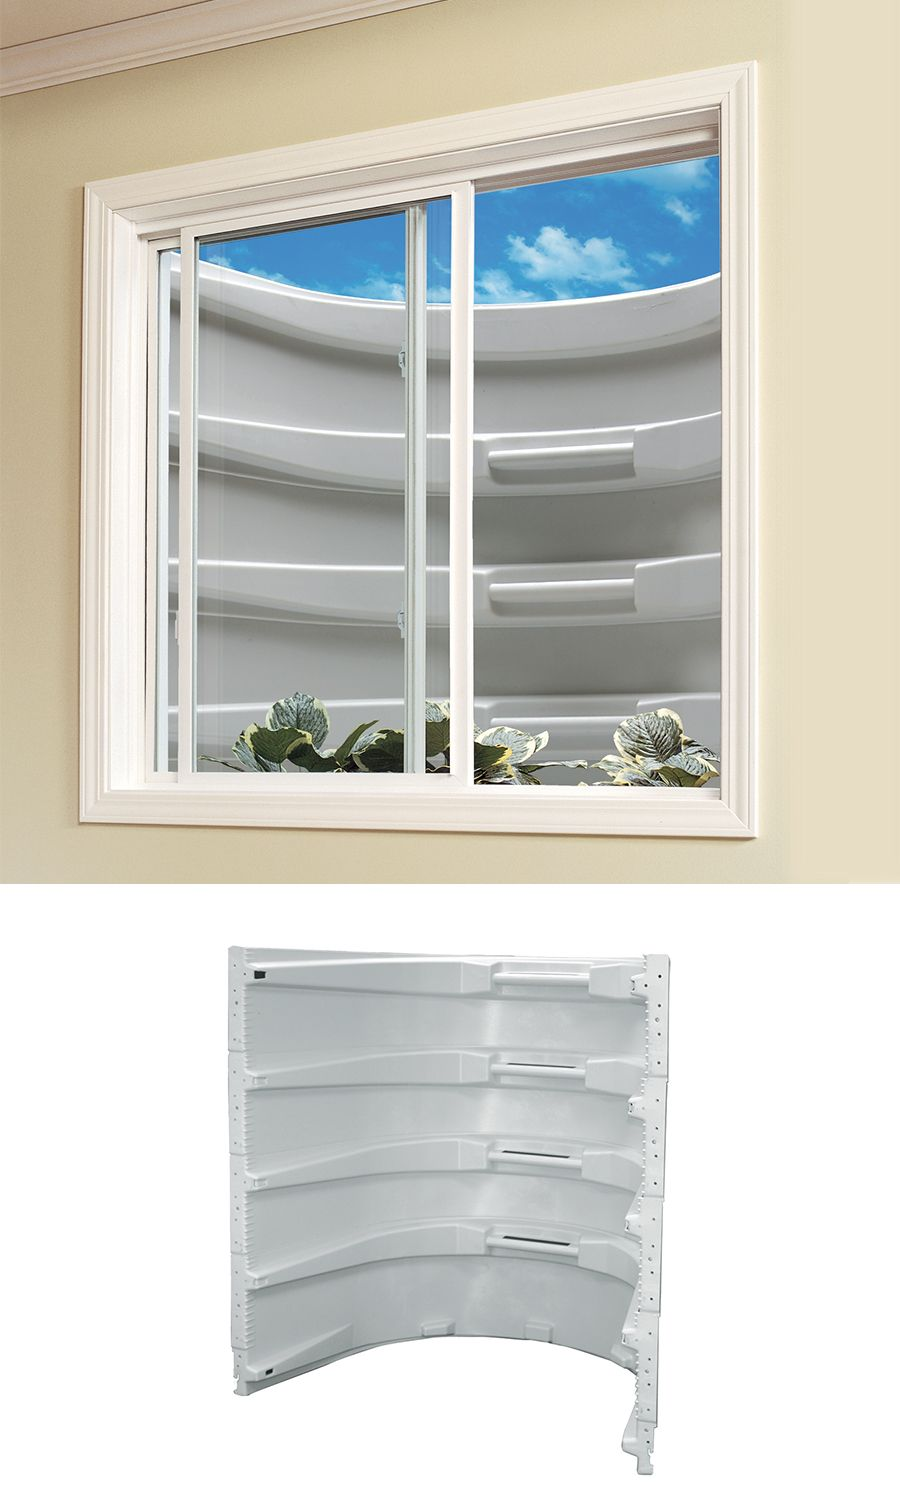 Style And Security All Rolled Into One This Wellcraft Modular Window Well Helps Your Family Stay Saf Window Well Basement Windows Basement Window Replacement